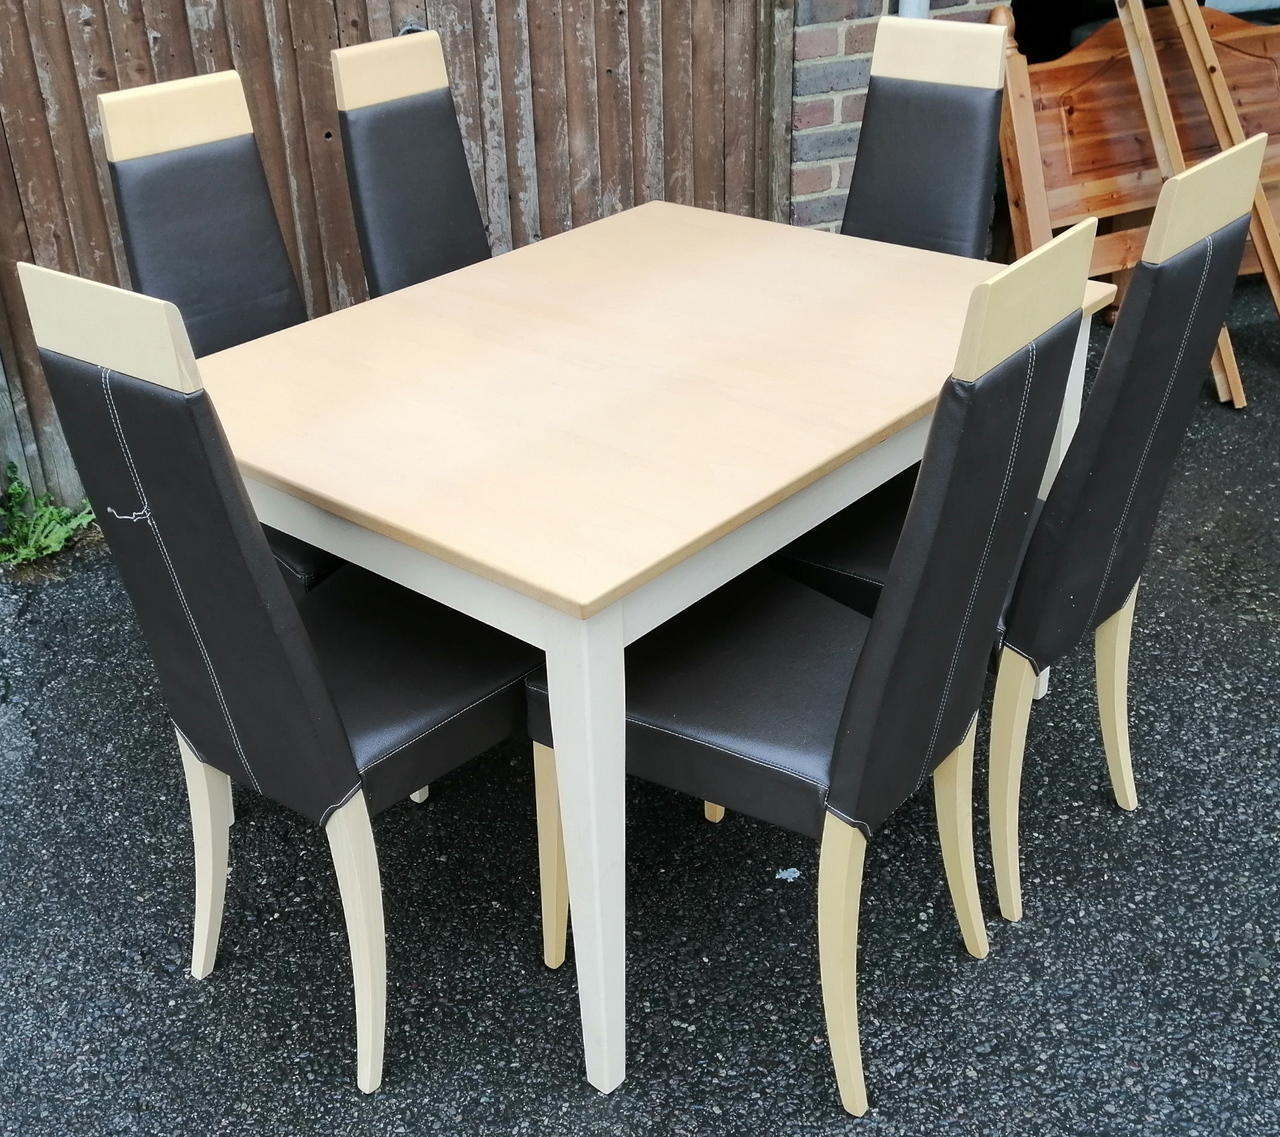 Surprising John E Coyle Extending Dining Table 6 Chairs In Haywards Bralicious Painted Fabric Chair Ideas Braliciousco